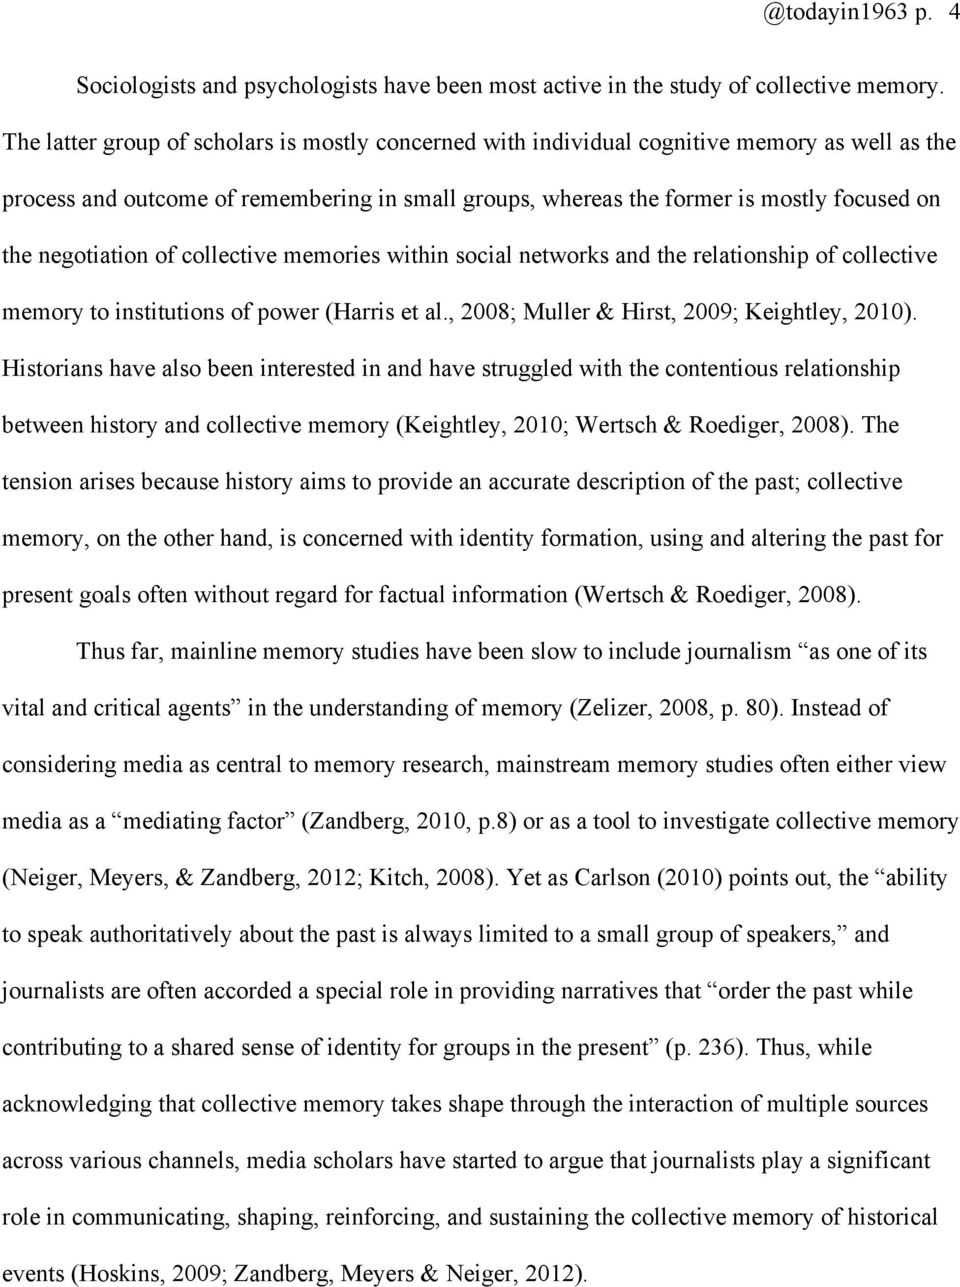 negotiation of collective memories within social networks and the relationship of collective memory to institutions of power (Harris et al., 2008; Muller & Hirst, 2009; Keightley, 2010).